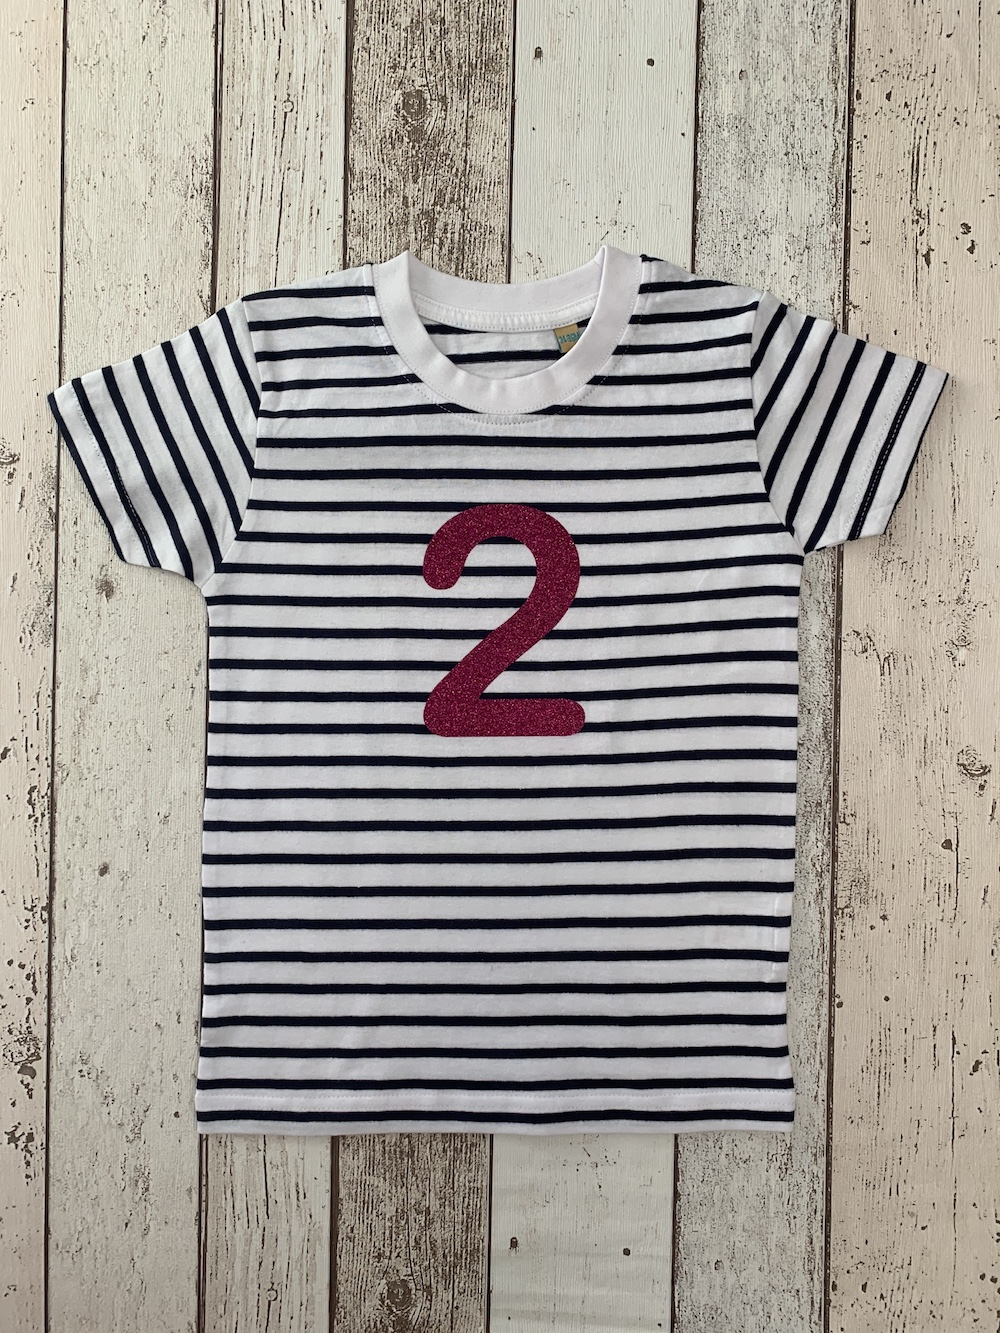 Number 2 Stripe Birthday T-shirt